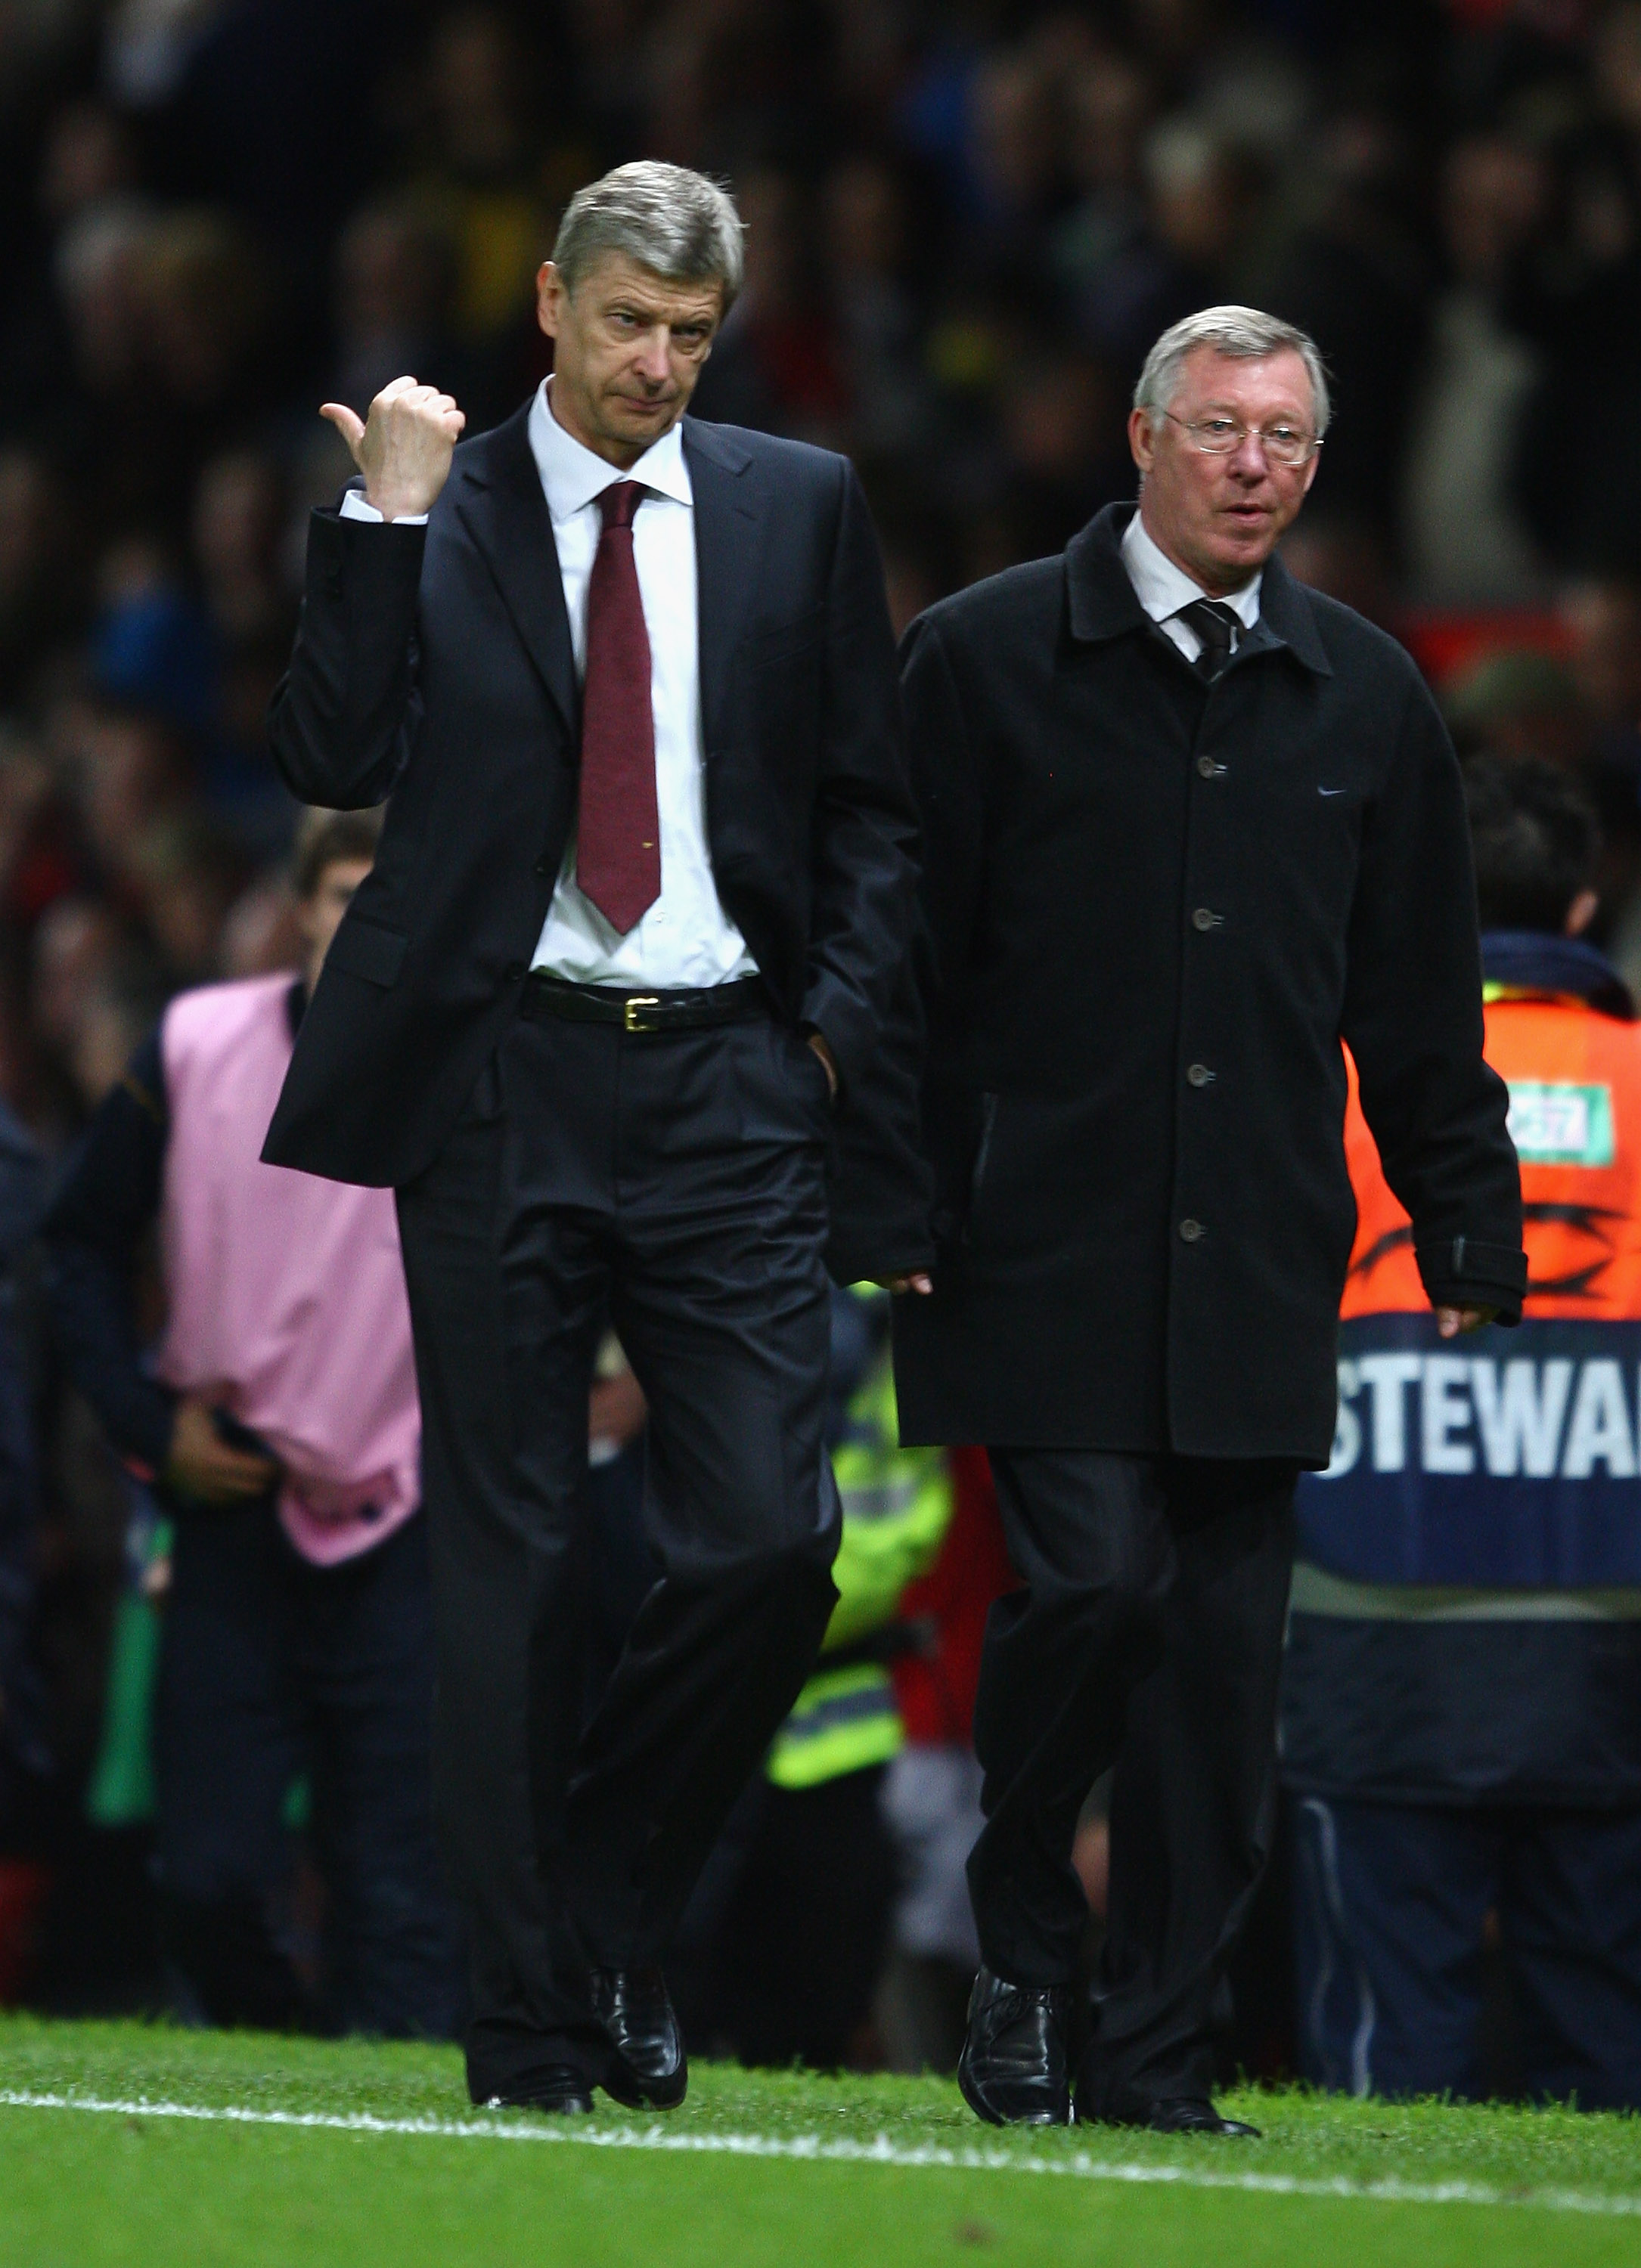 MANCHESTER, UNITED KINGDOM - APRIL 29:   Arsenal Manager Arsene Wenger gestures as he walks off with Manchester United Manager Sir Alex Ferguson at the end of the UEFA Champions League Semi Final First Leg match between Manchester United and Arsenal at Ol